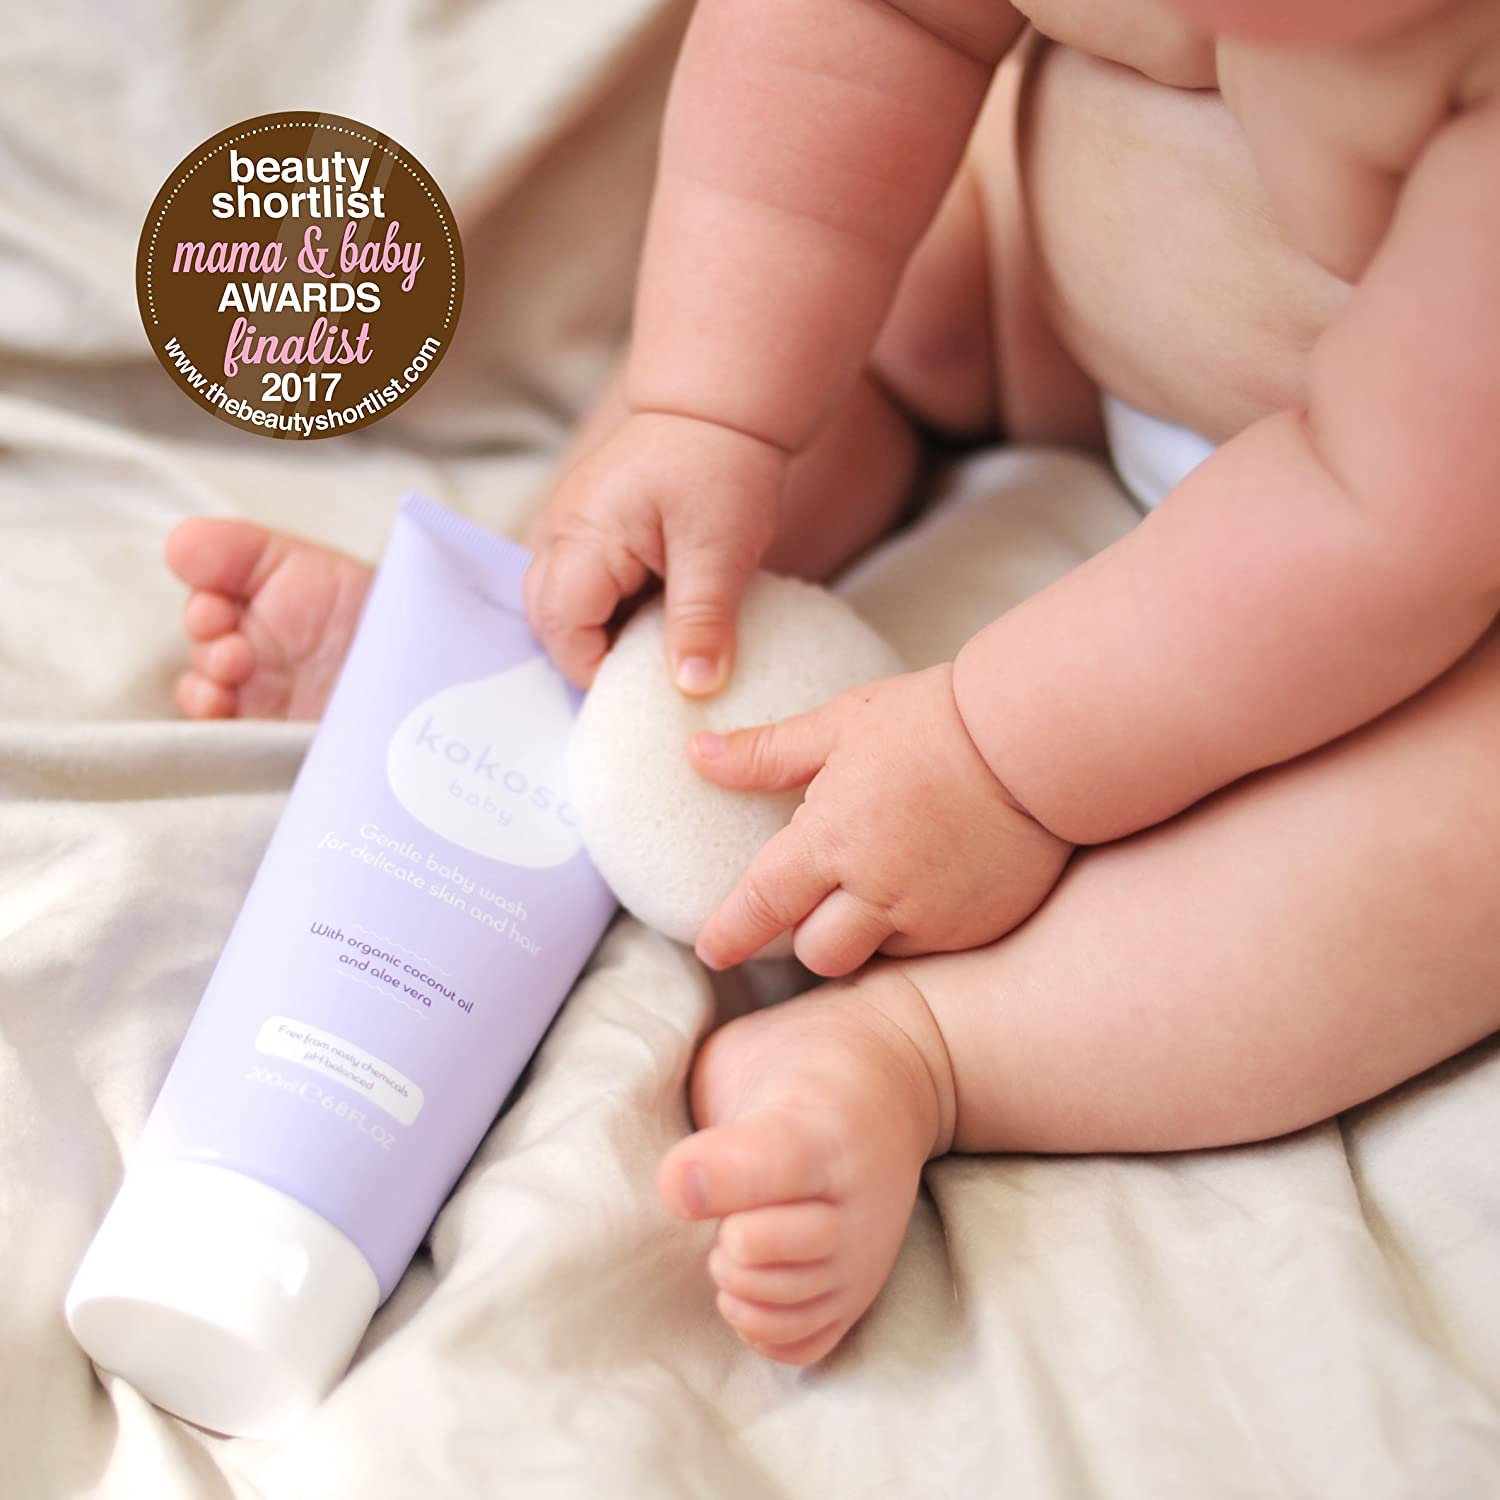 Kokoso Baby Wash Organic Natural Delicate For Skin Hair Cussons Body Mild Gentle 400ml Shampoo Softly Scented 200ml